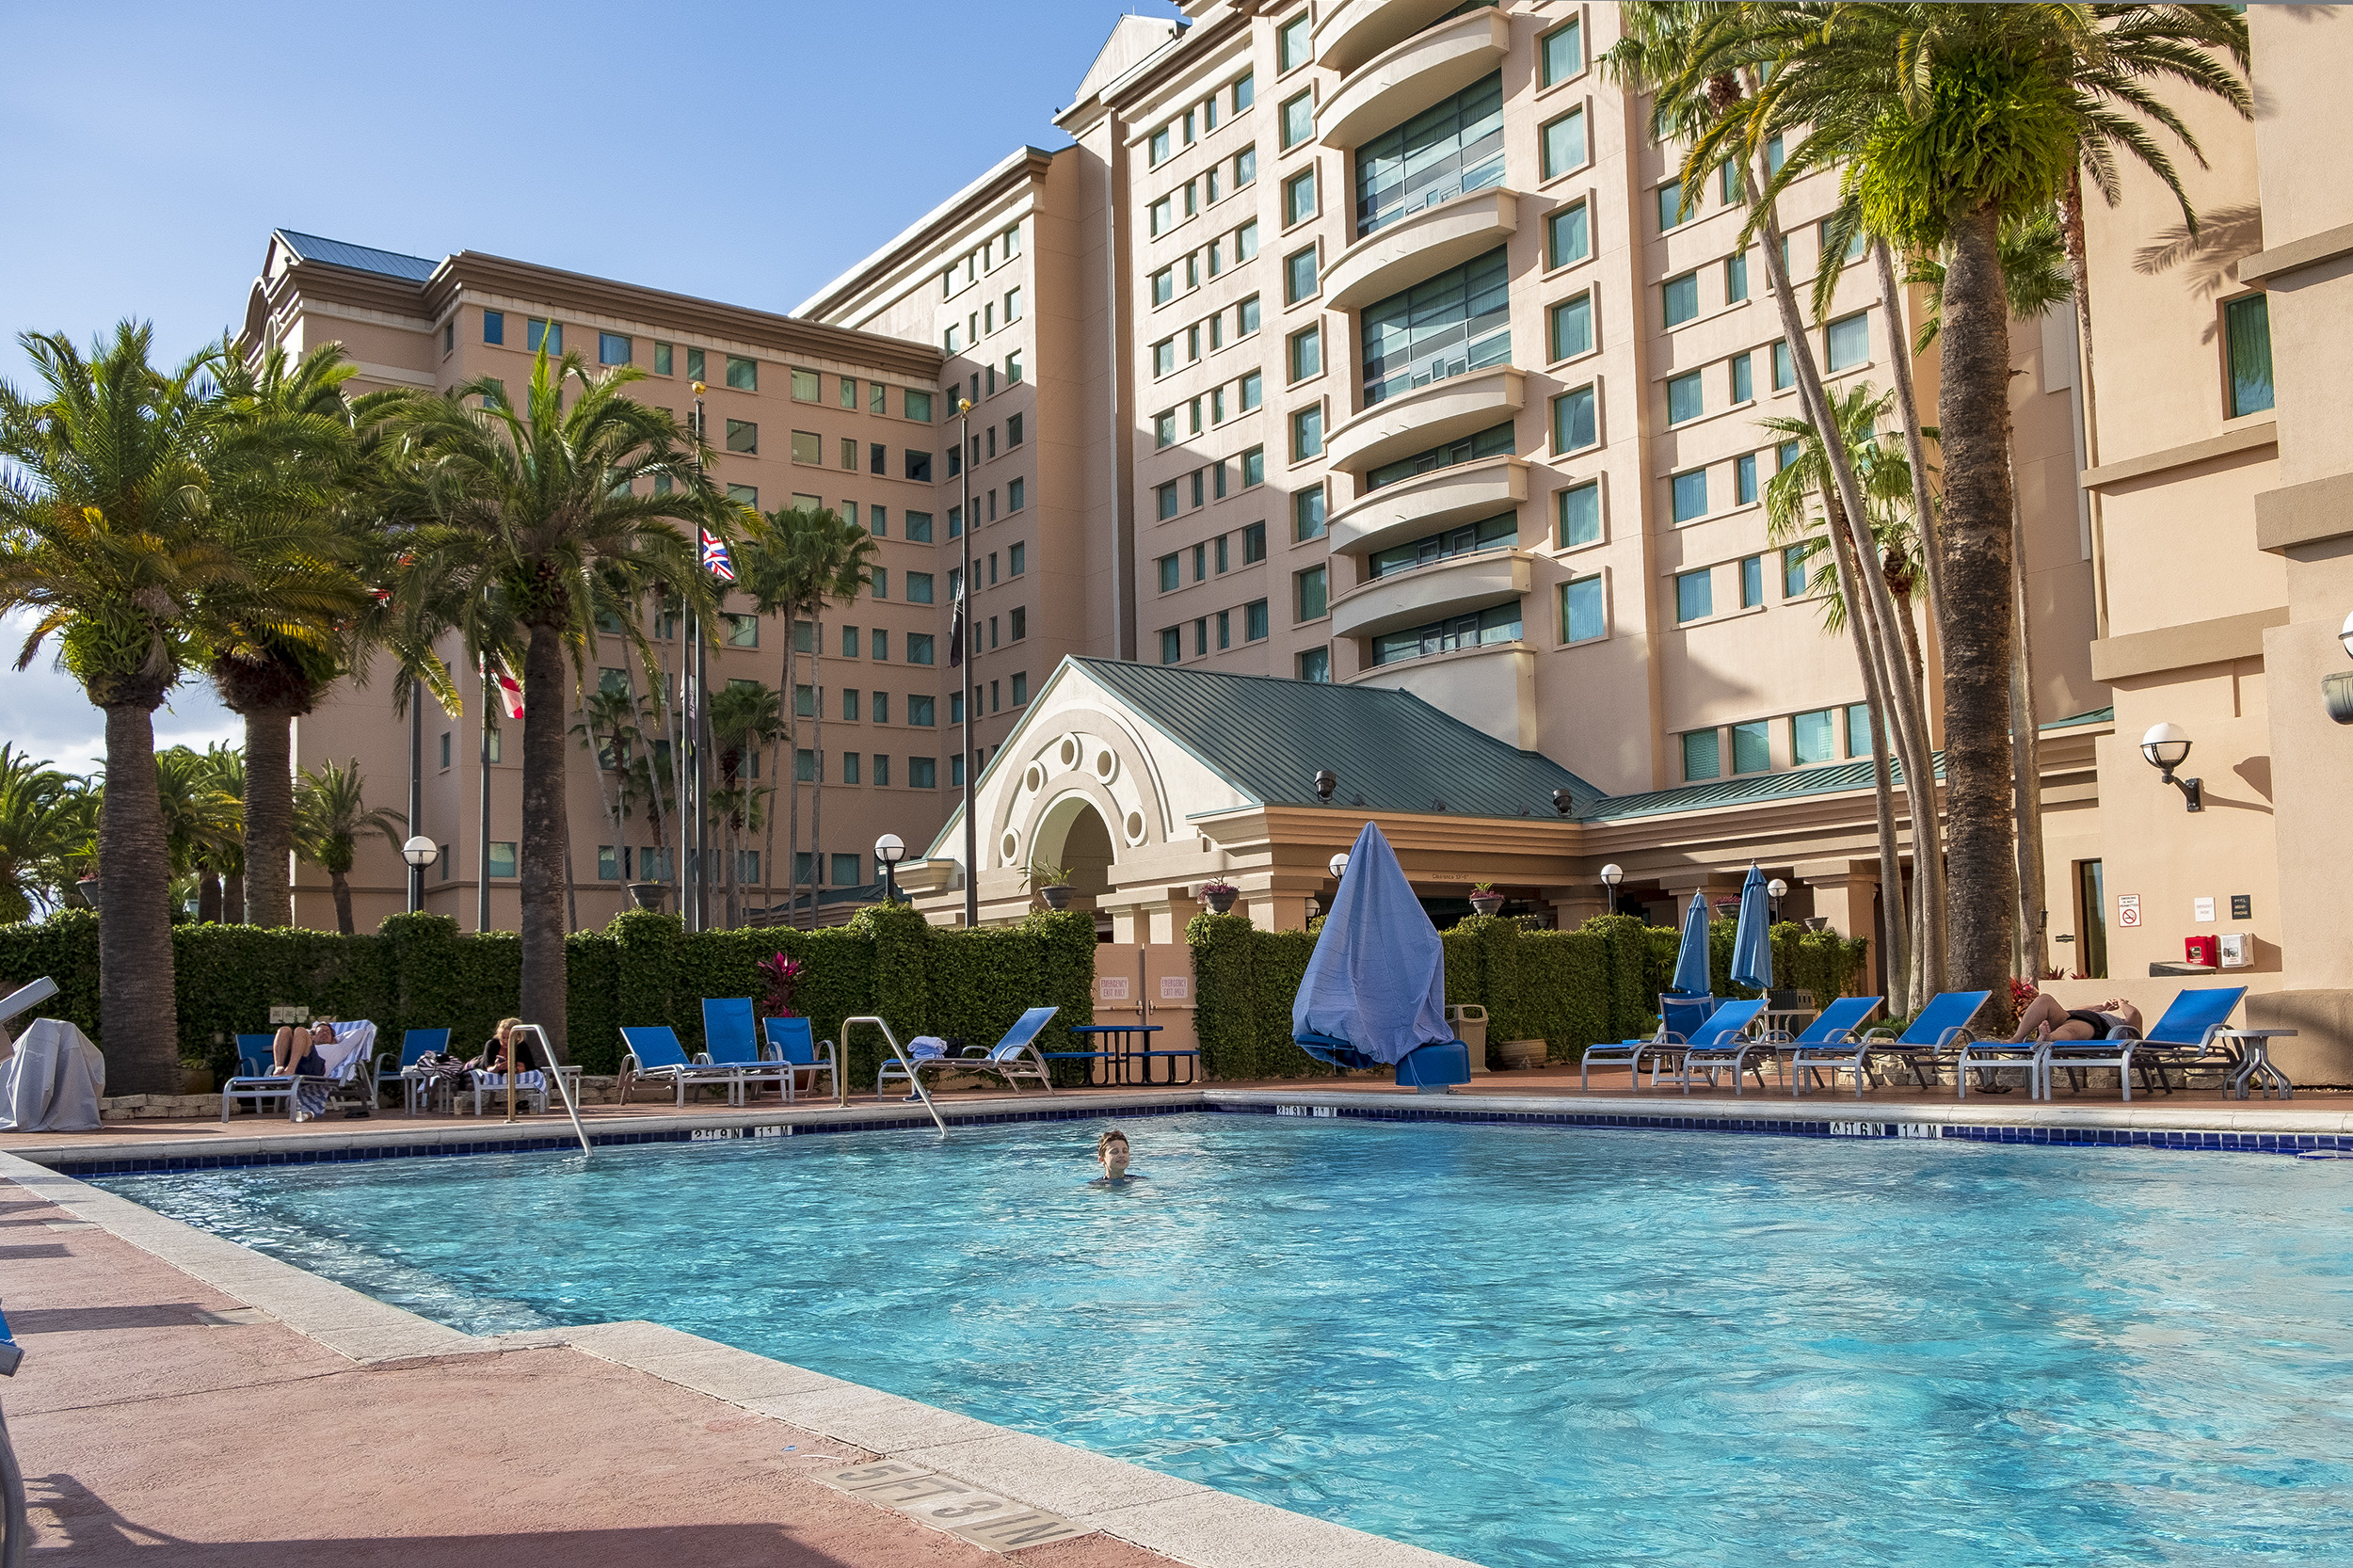 Florida Hotel & Conference Center Orlando Pool